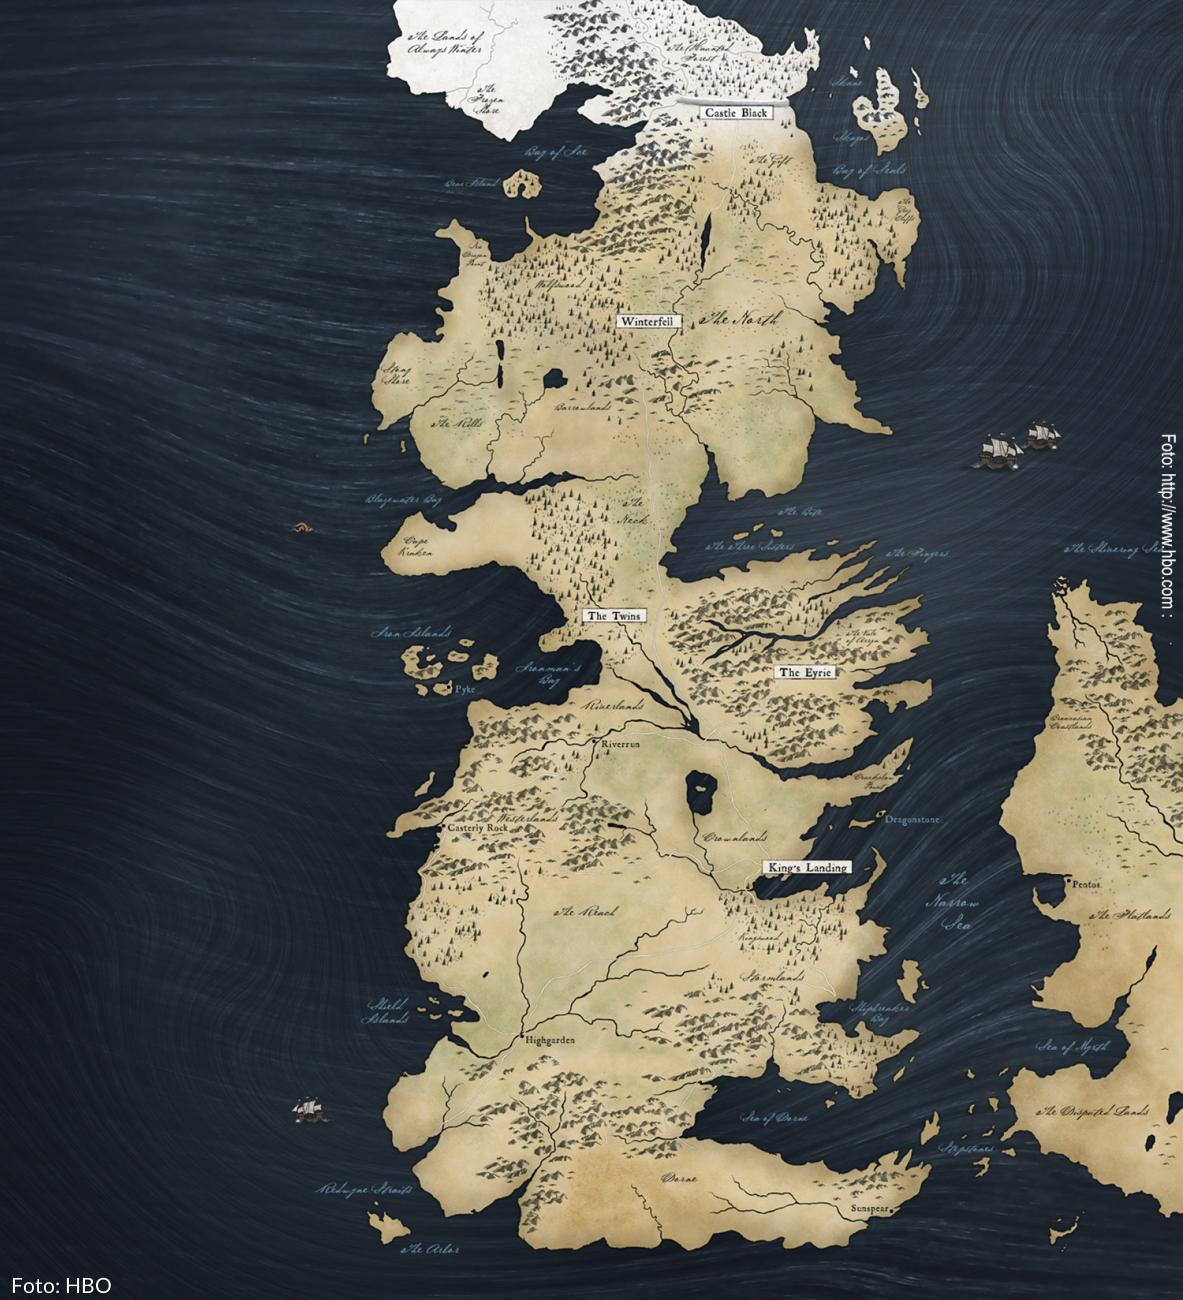 Westeros - Game of Thrones